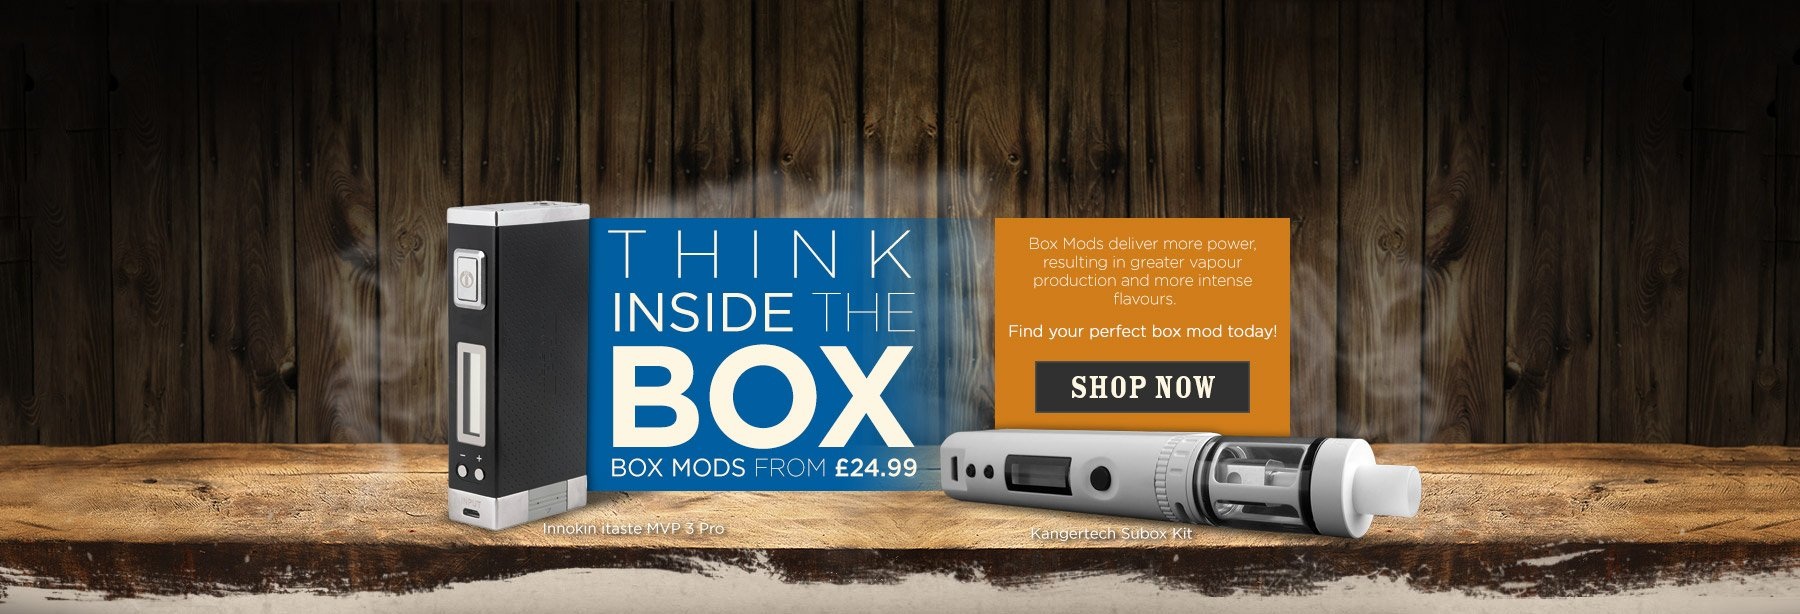 Box Mod from £24.99